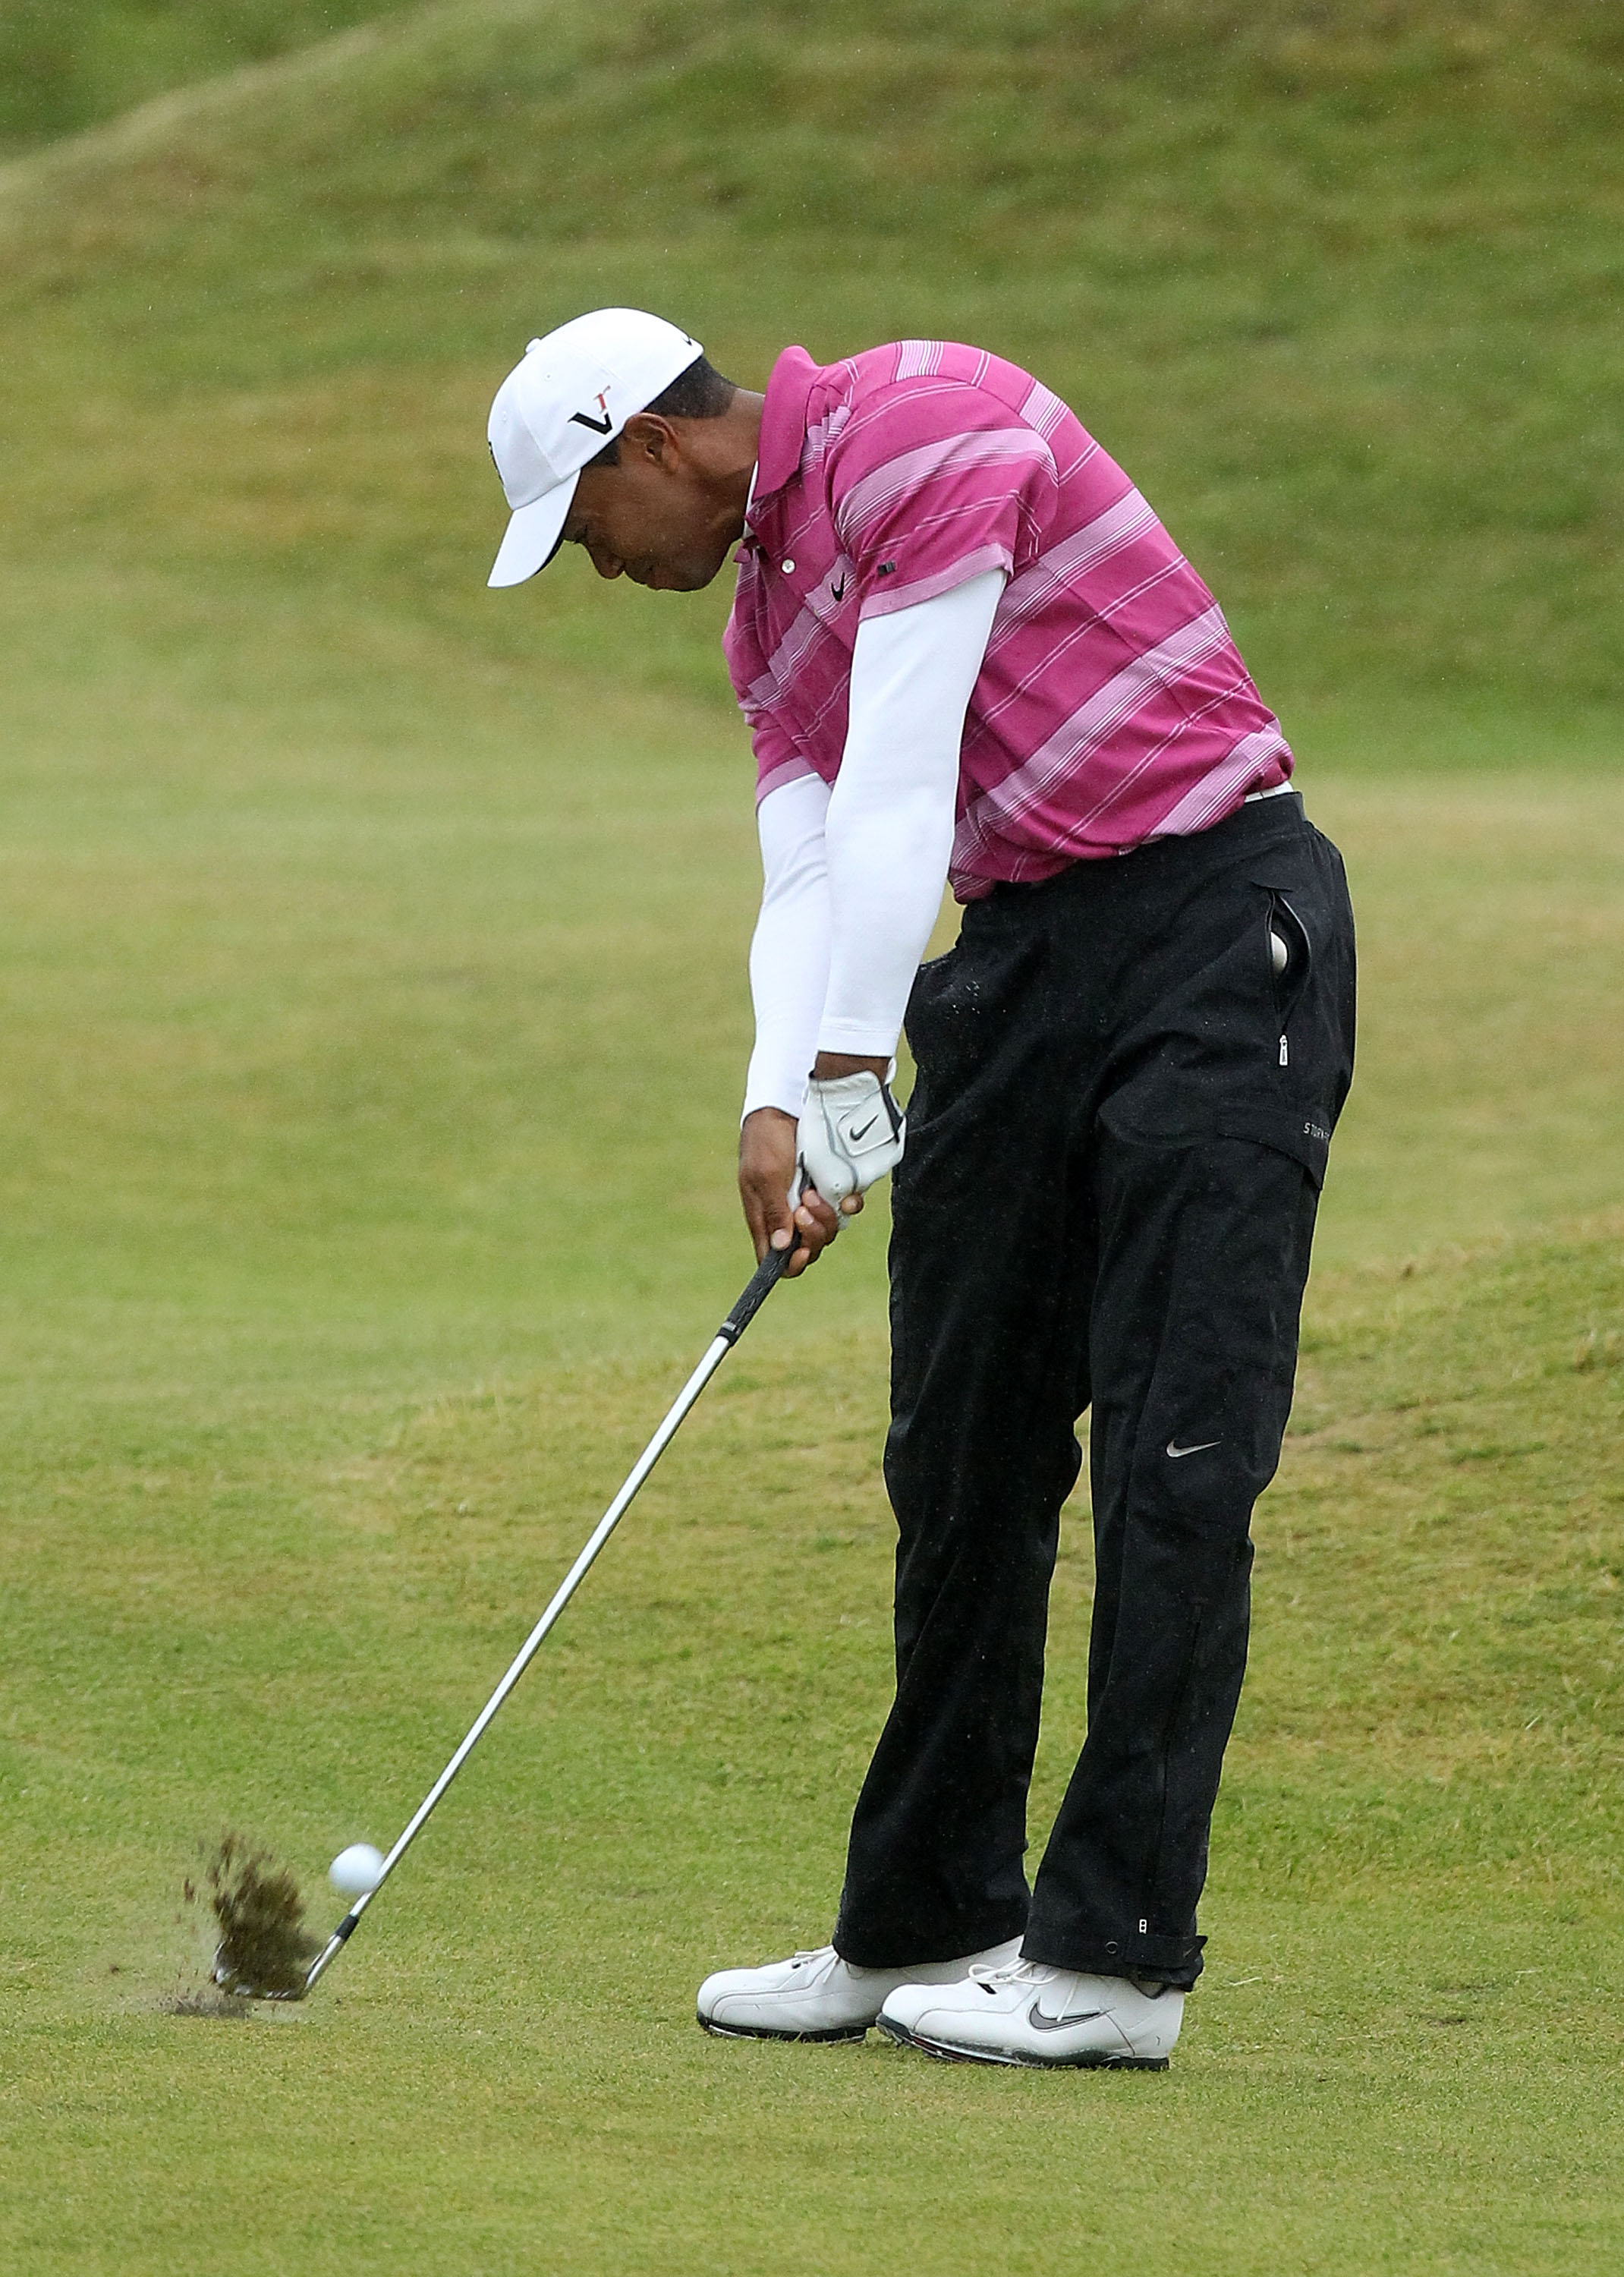 Rory Mcilroy Tiger Woods Who Has The Upper Hand At The British Open Bleacher Report Latest News Videos And Highlights